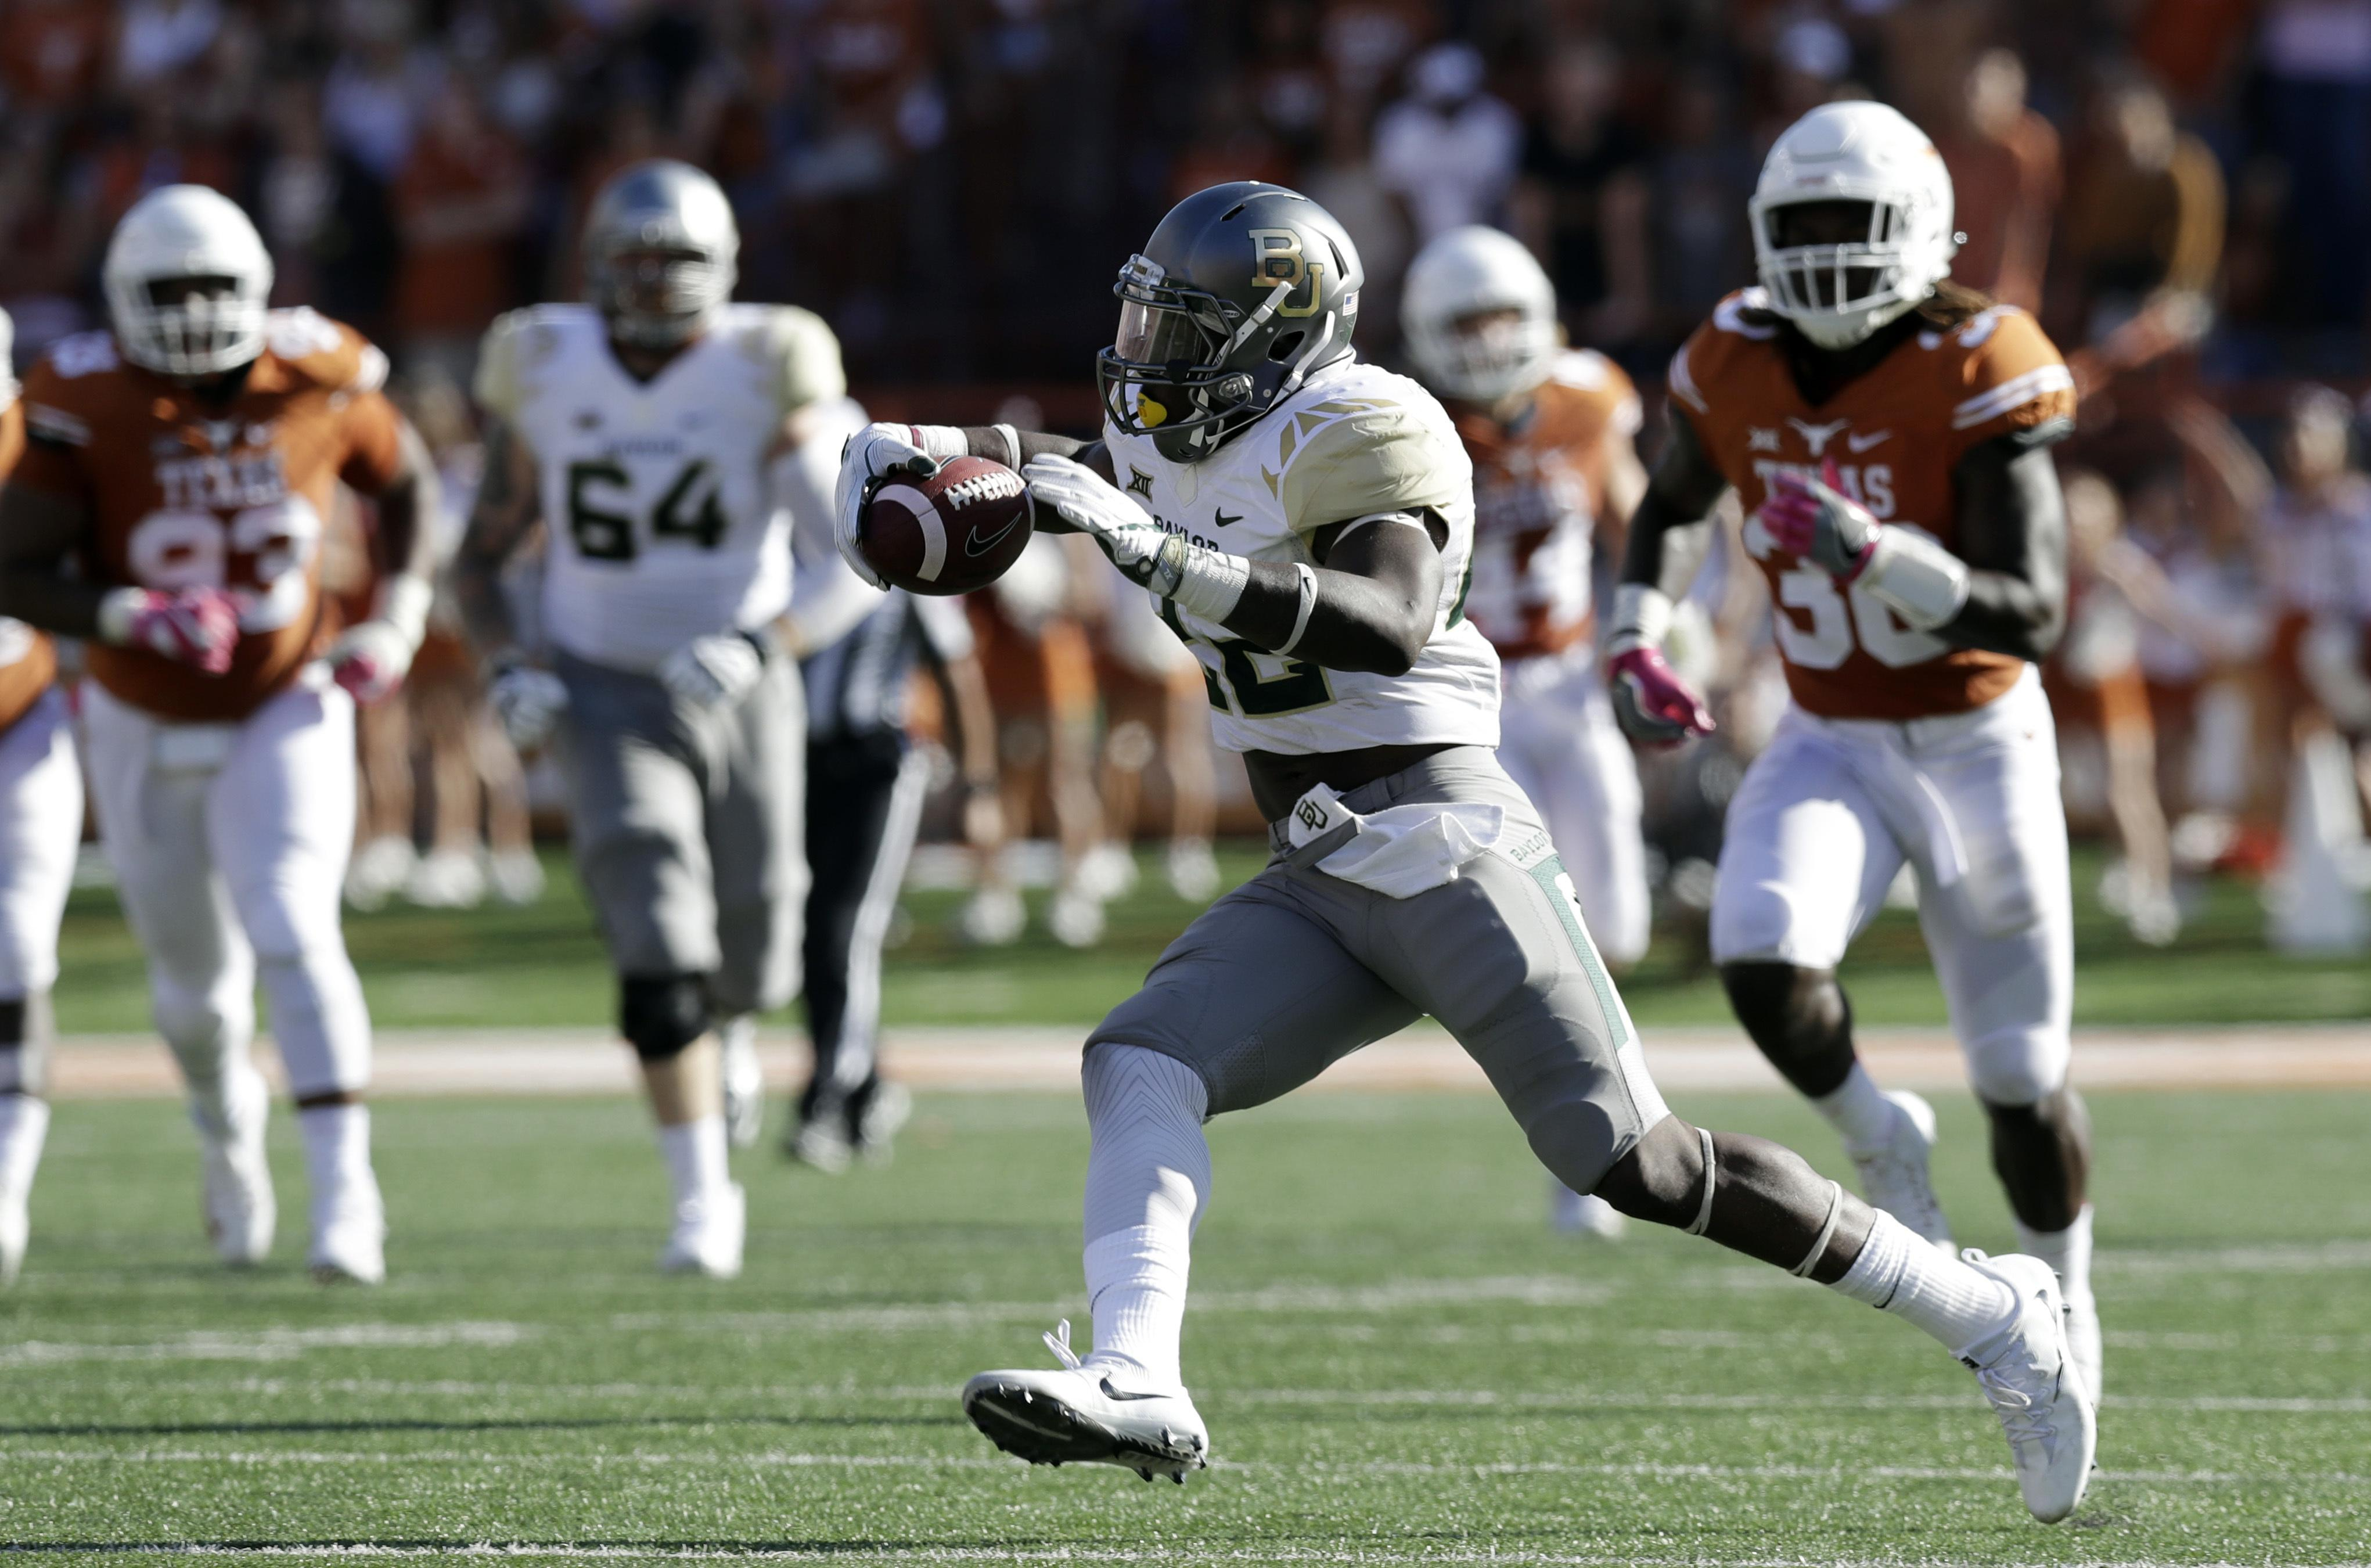 Baylor Career Rushing Leader Sidelined For Attitude Issues The